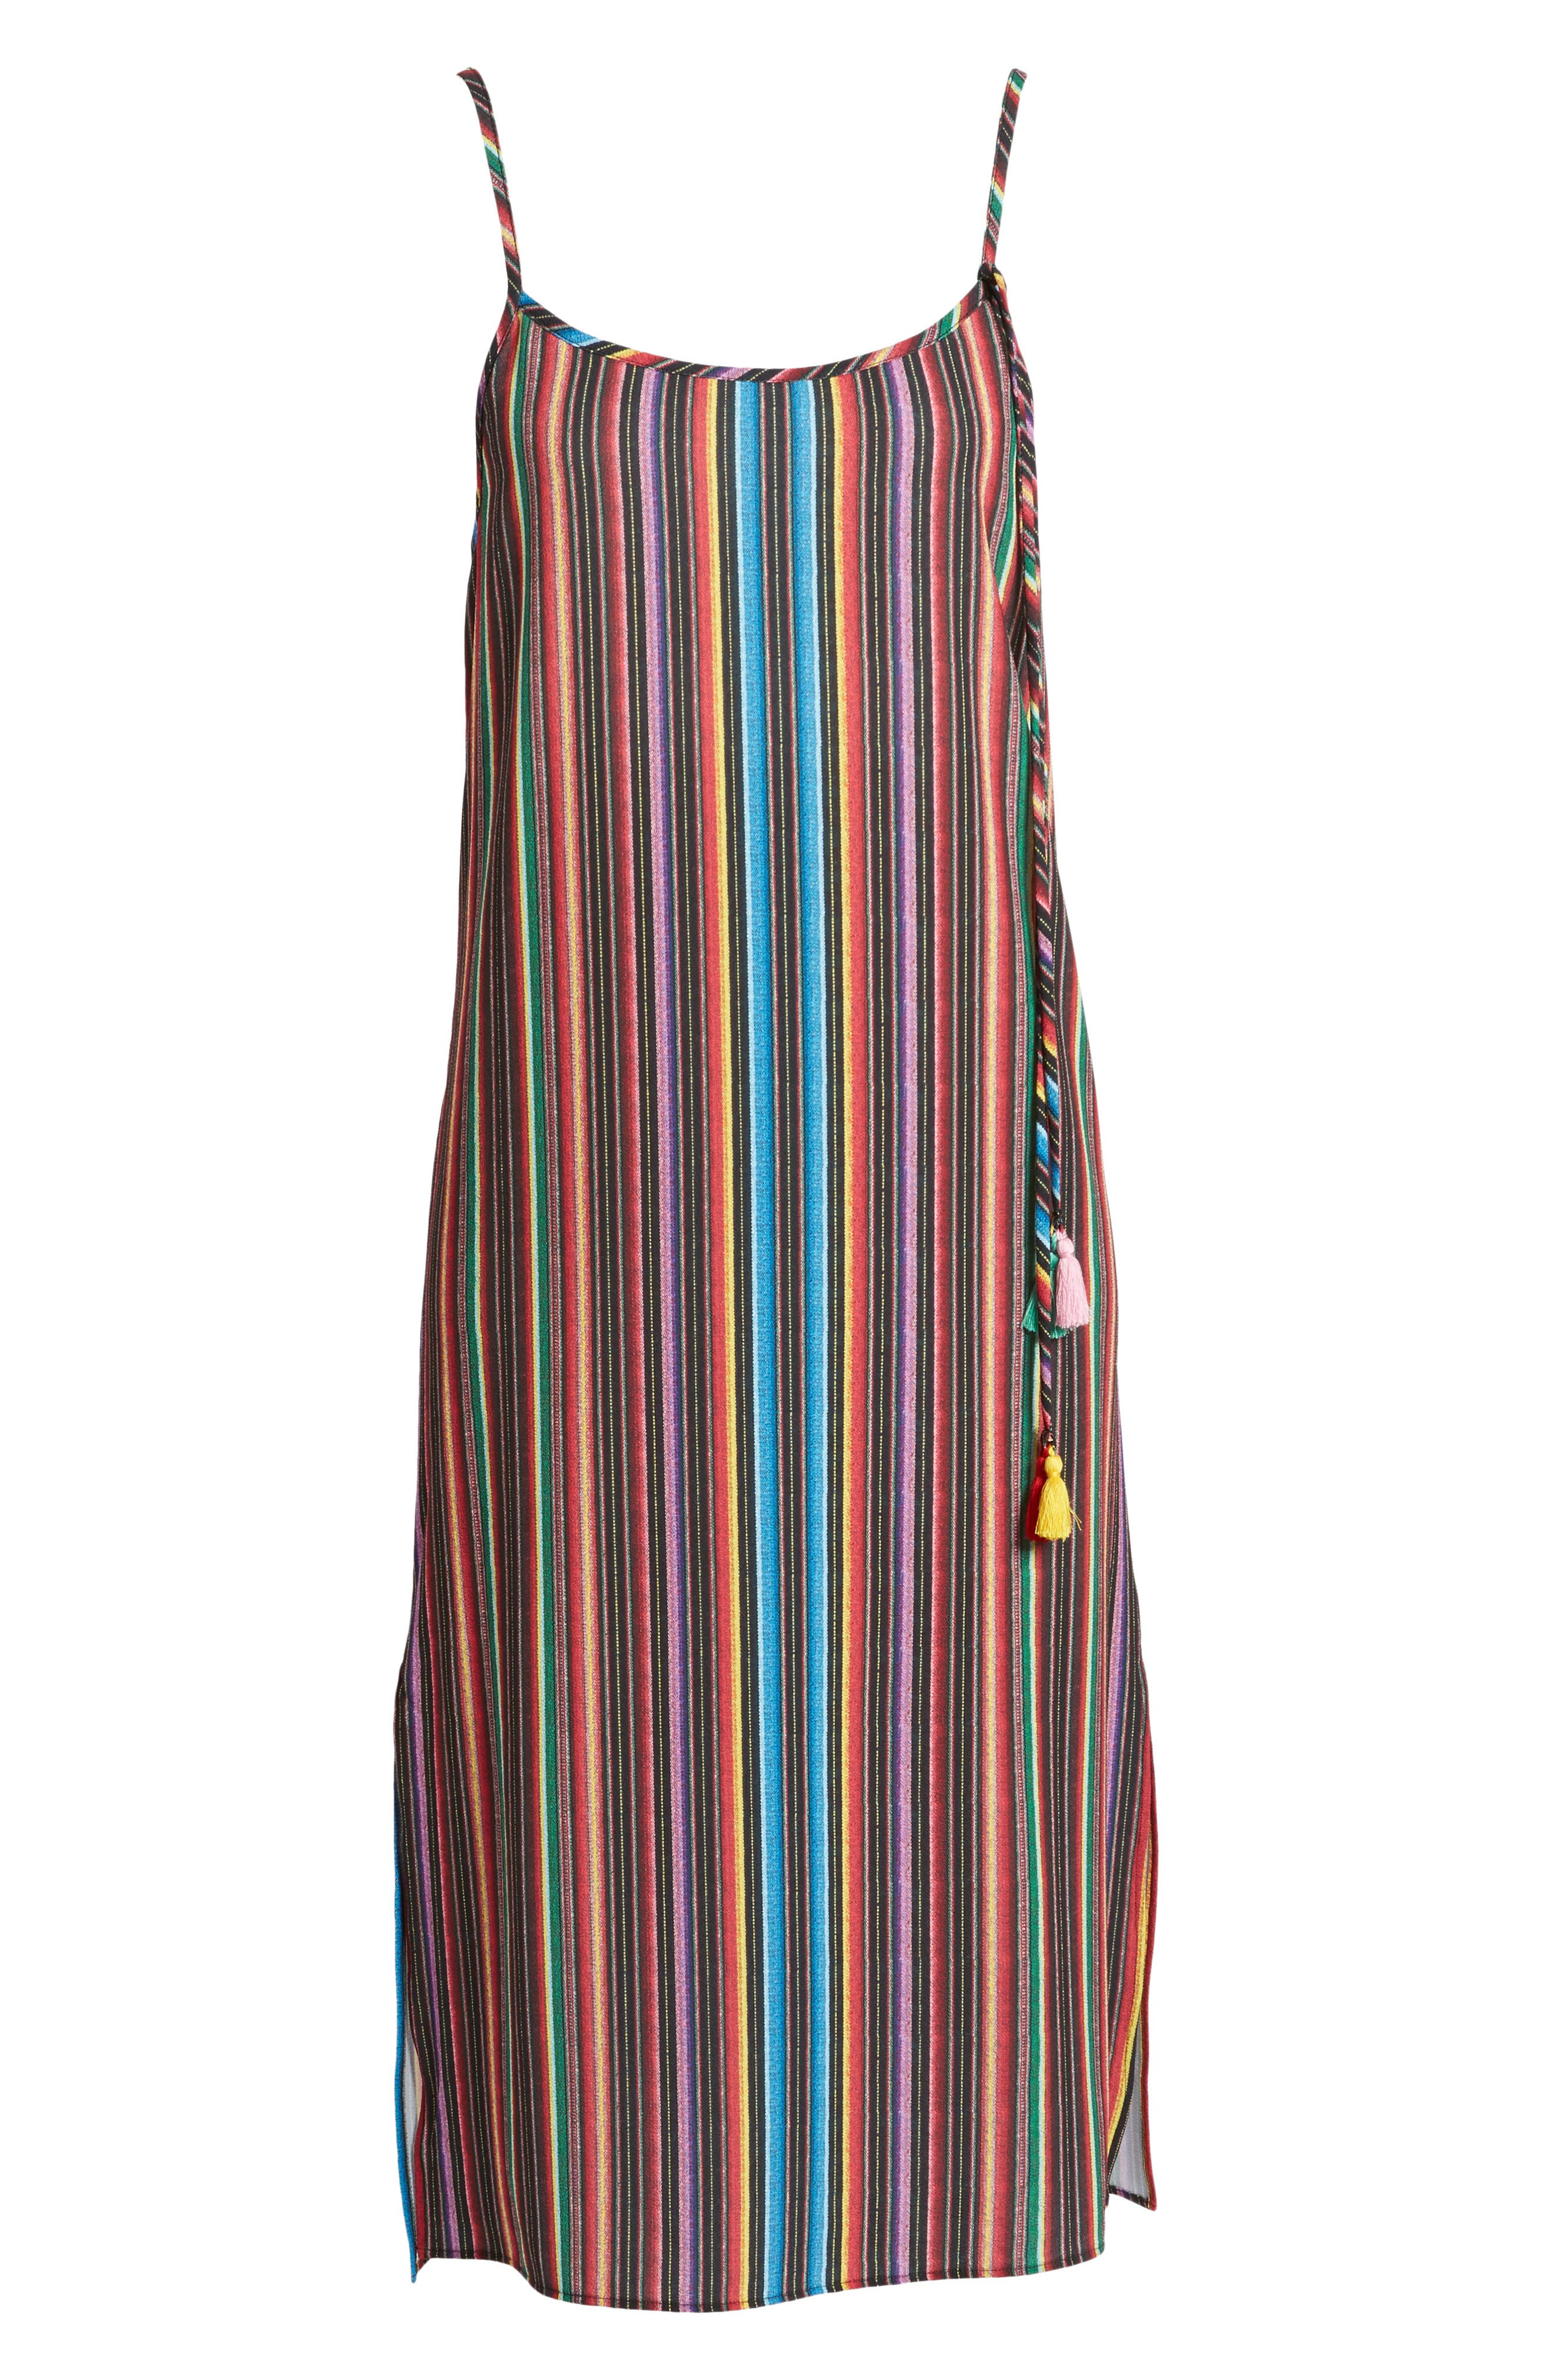 Shiloh Tassel Slipdress,                             Alternate thumbnail 6, color,